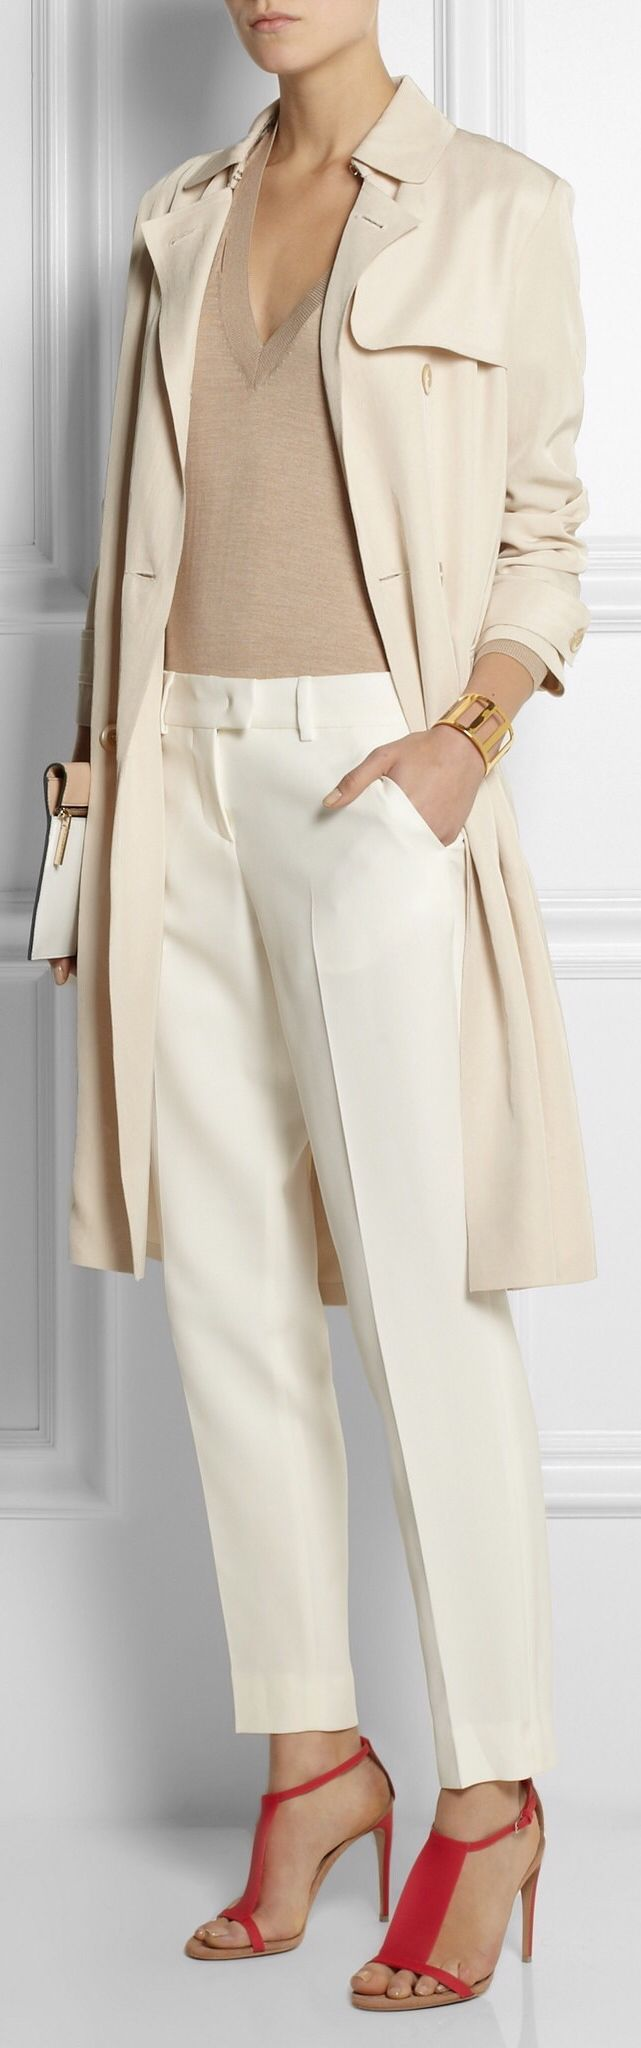 Fendi. / classic and chic / stylish / chic women / white / nude / outfit / soft colors / lovely style